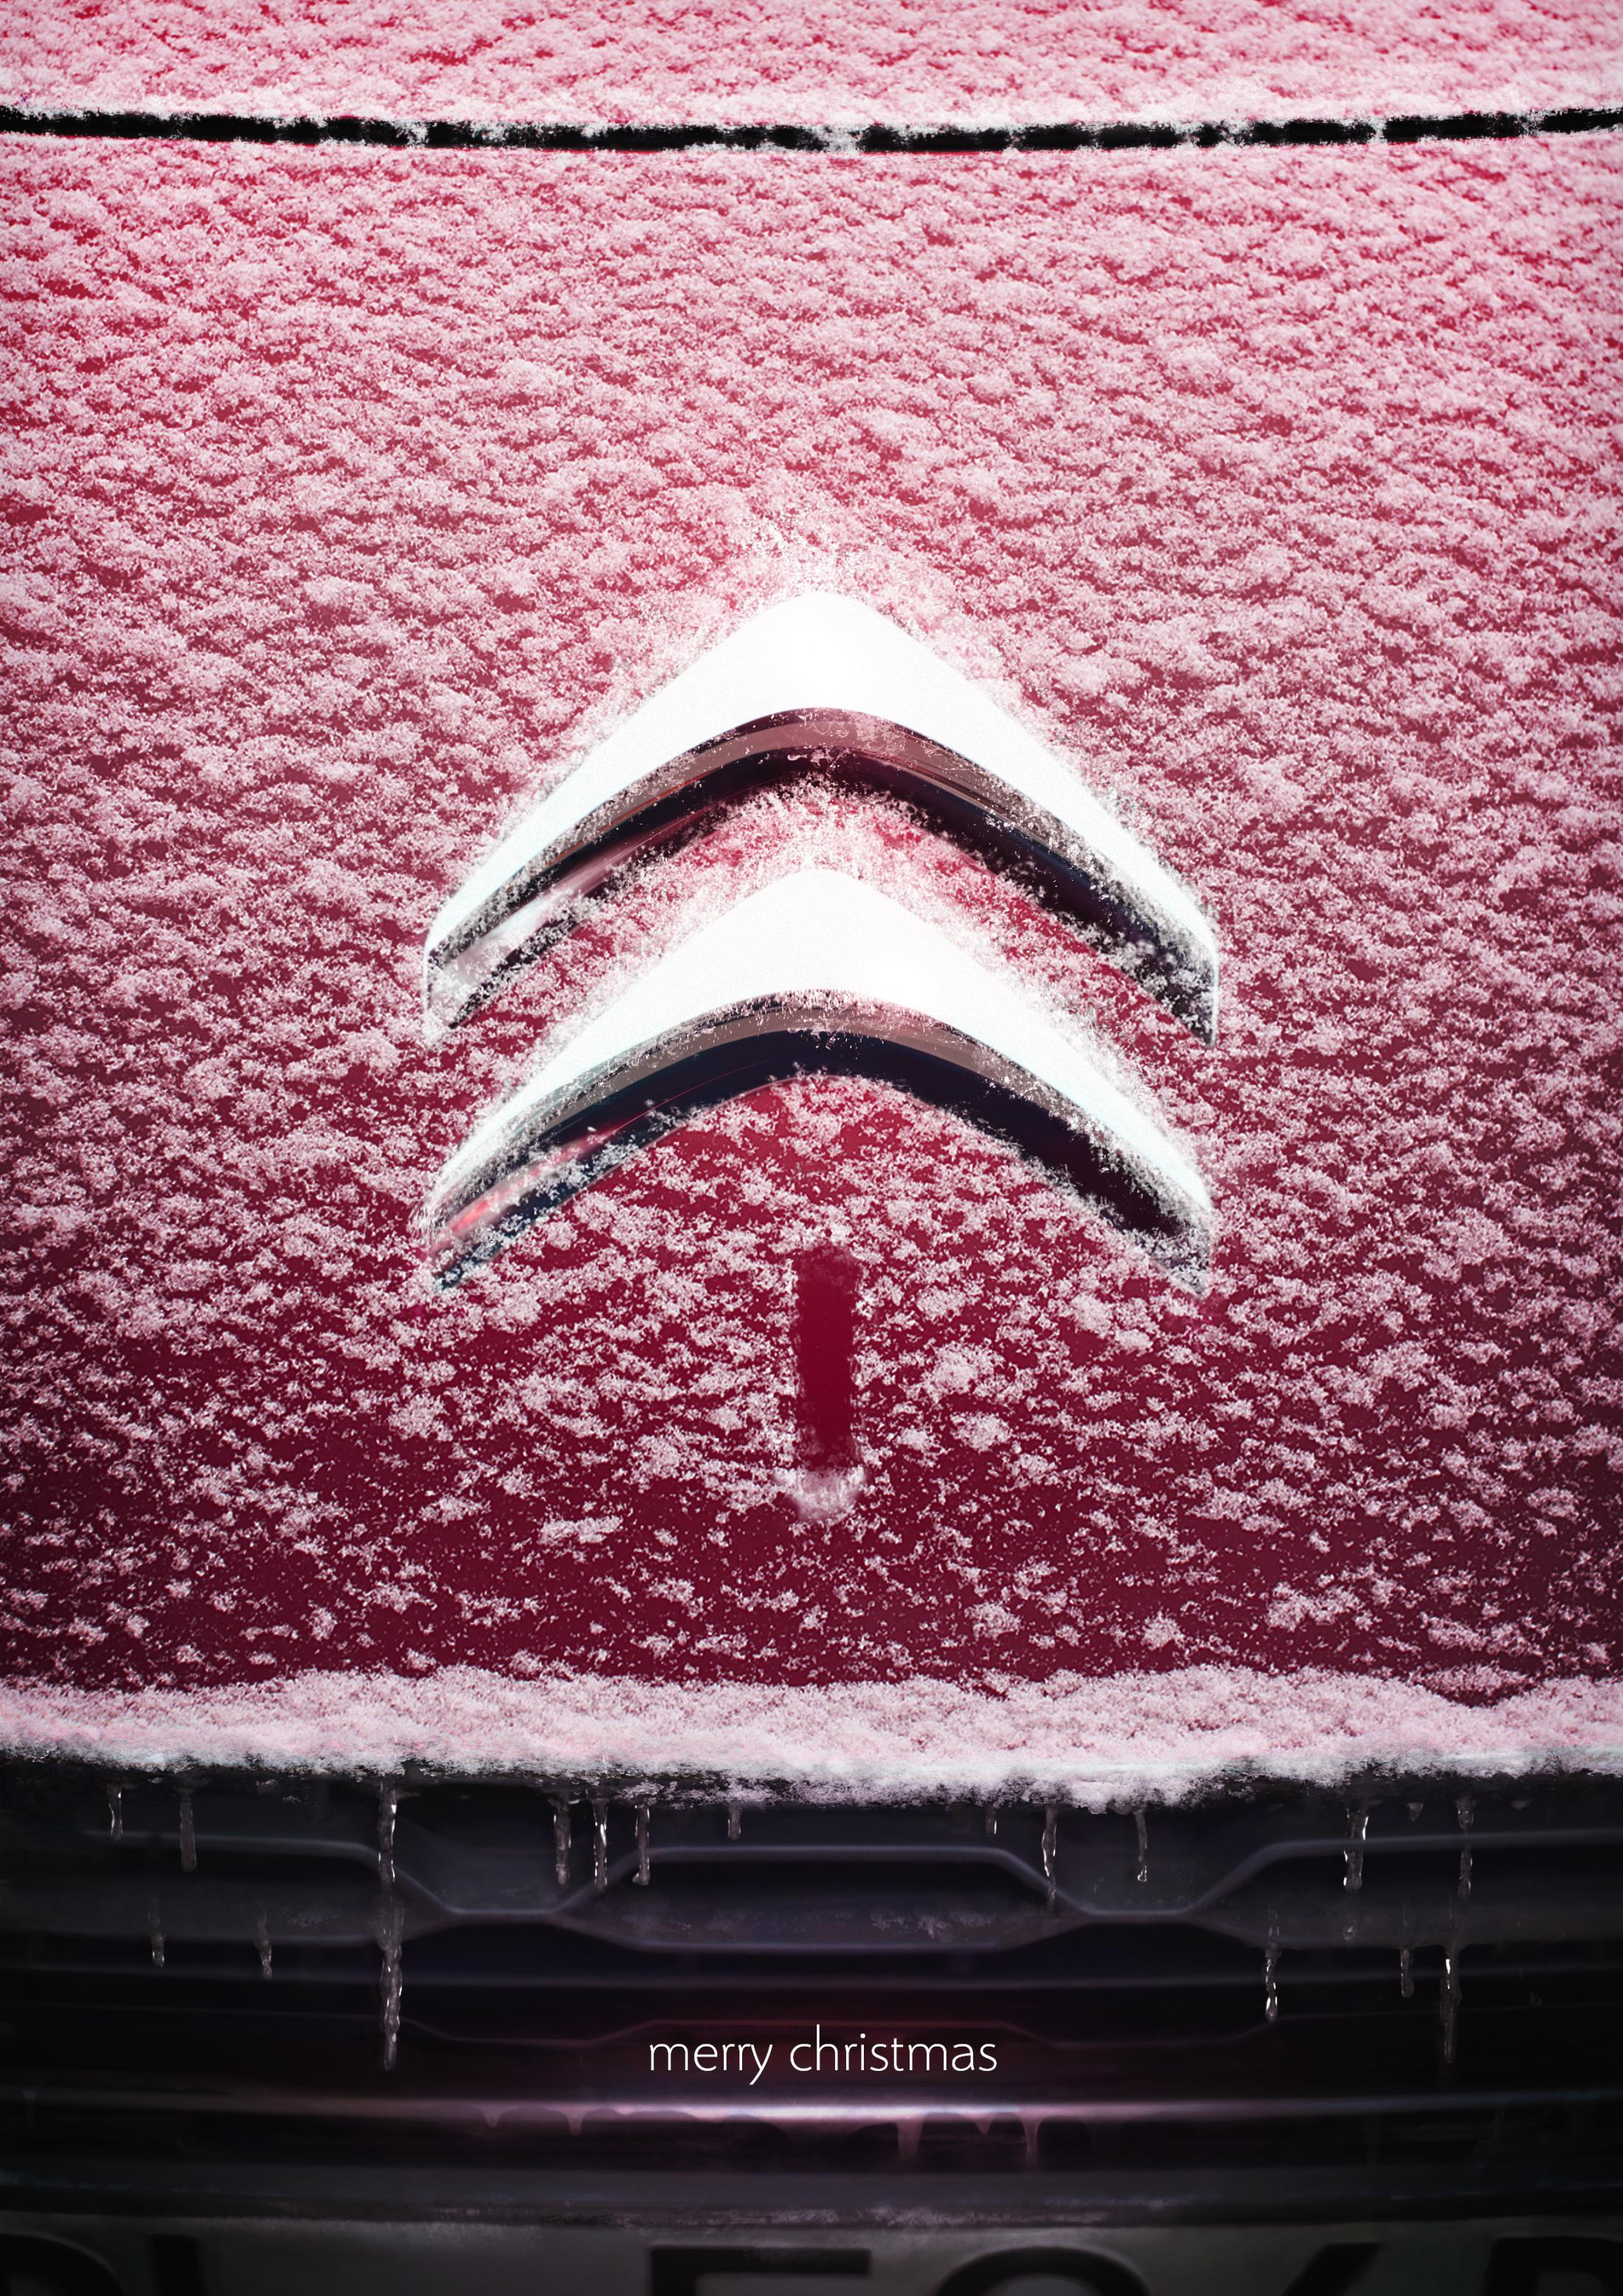 Citroën Digital Ad - Merry Christmas